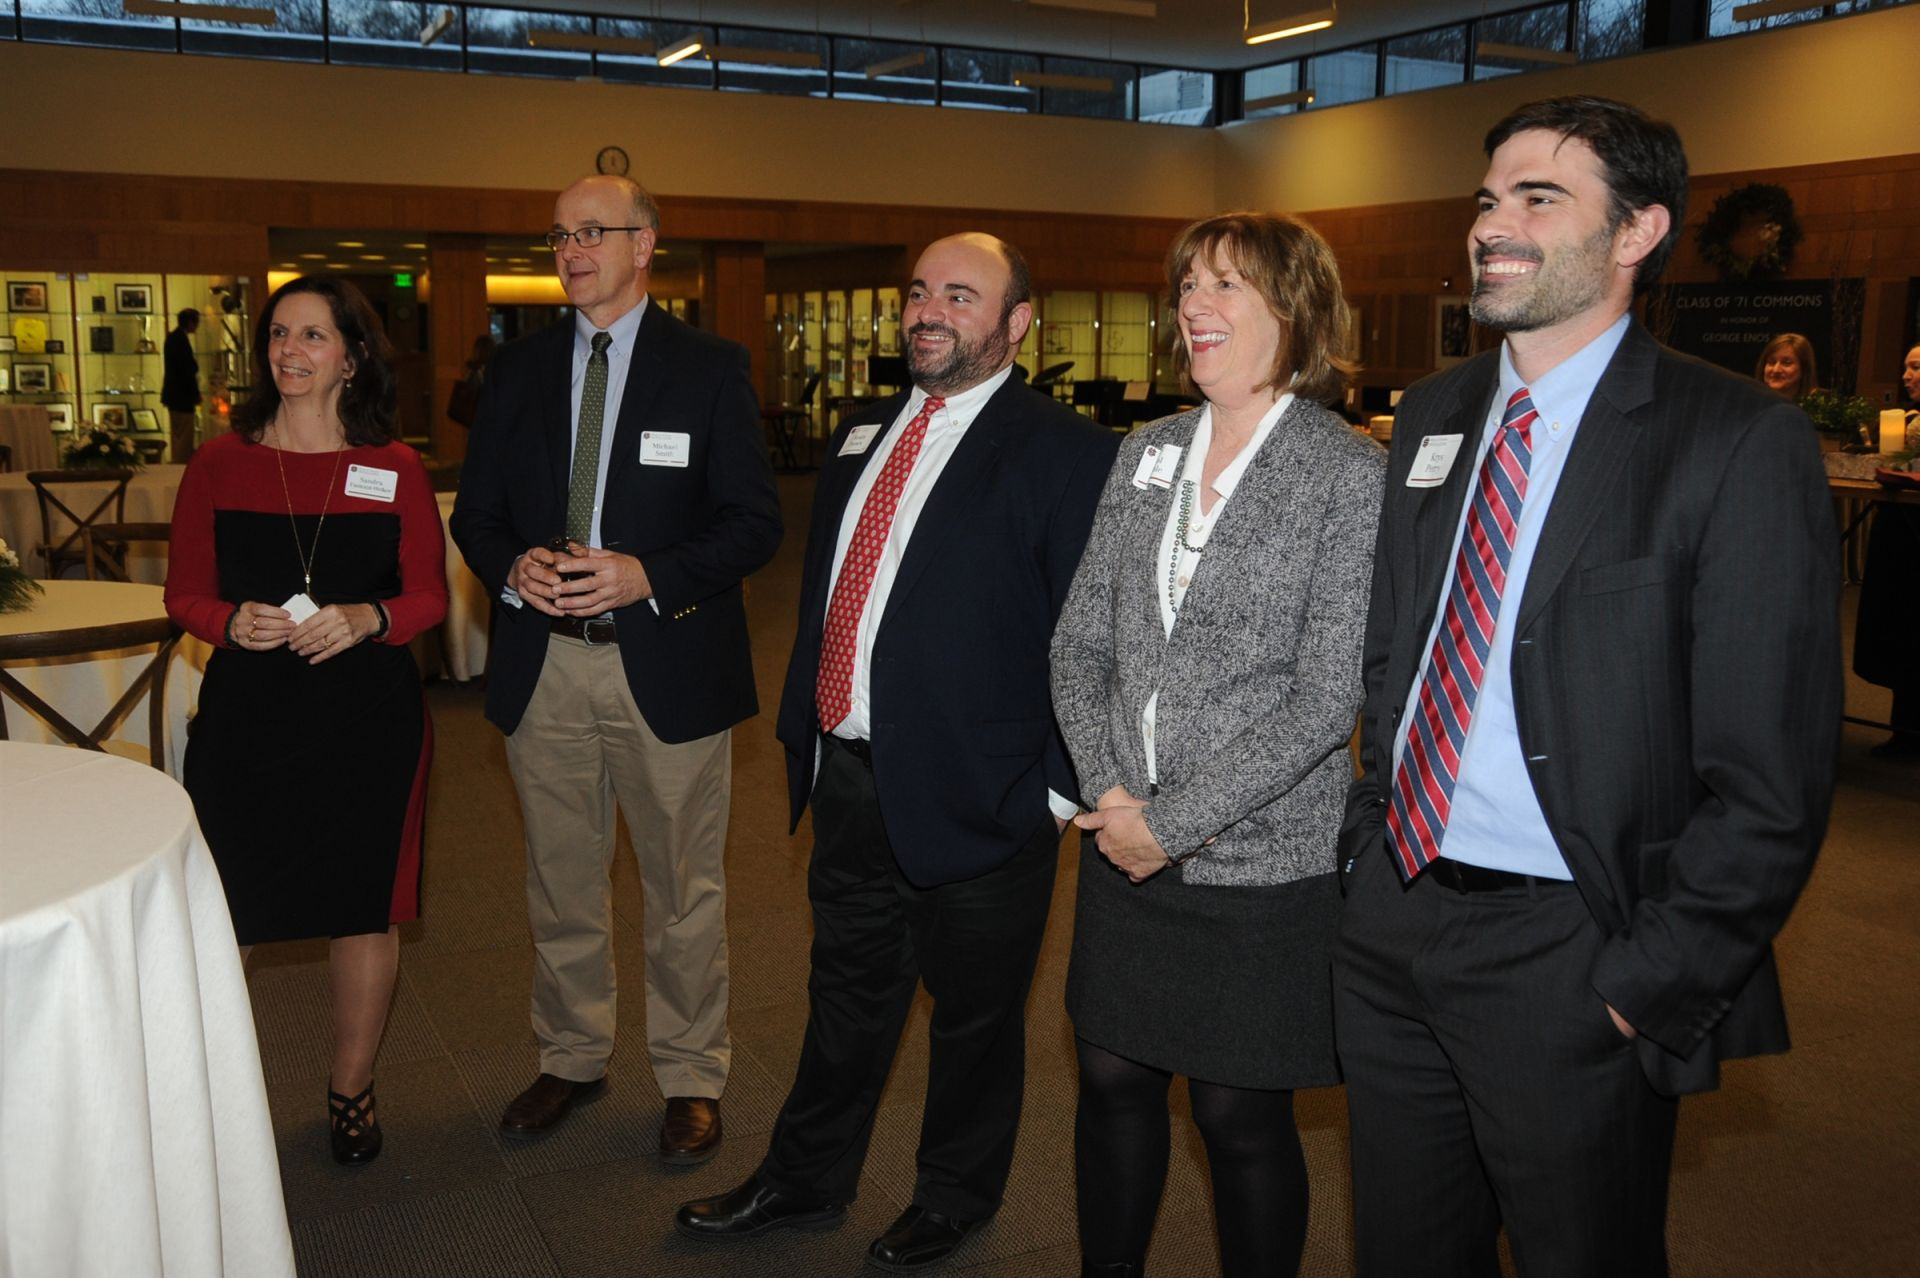 Faculty members Sandie Fantozzi-Welker, Mike Smith, Justin Passov '97, Carol Pribble and Krys Perry